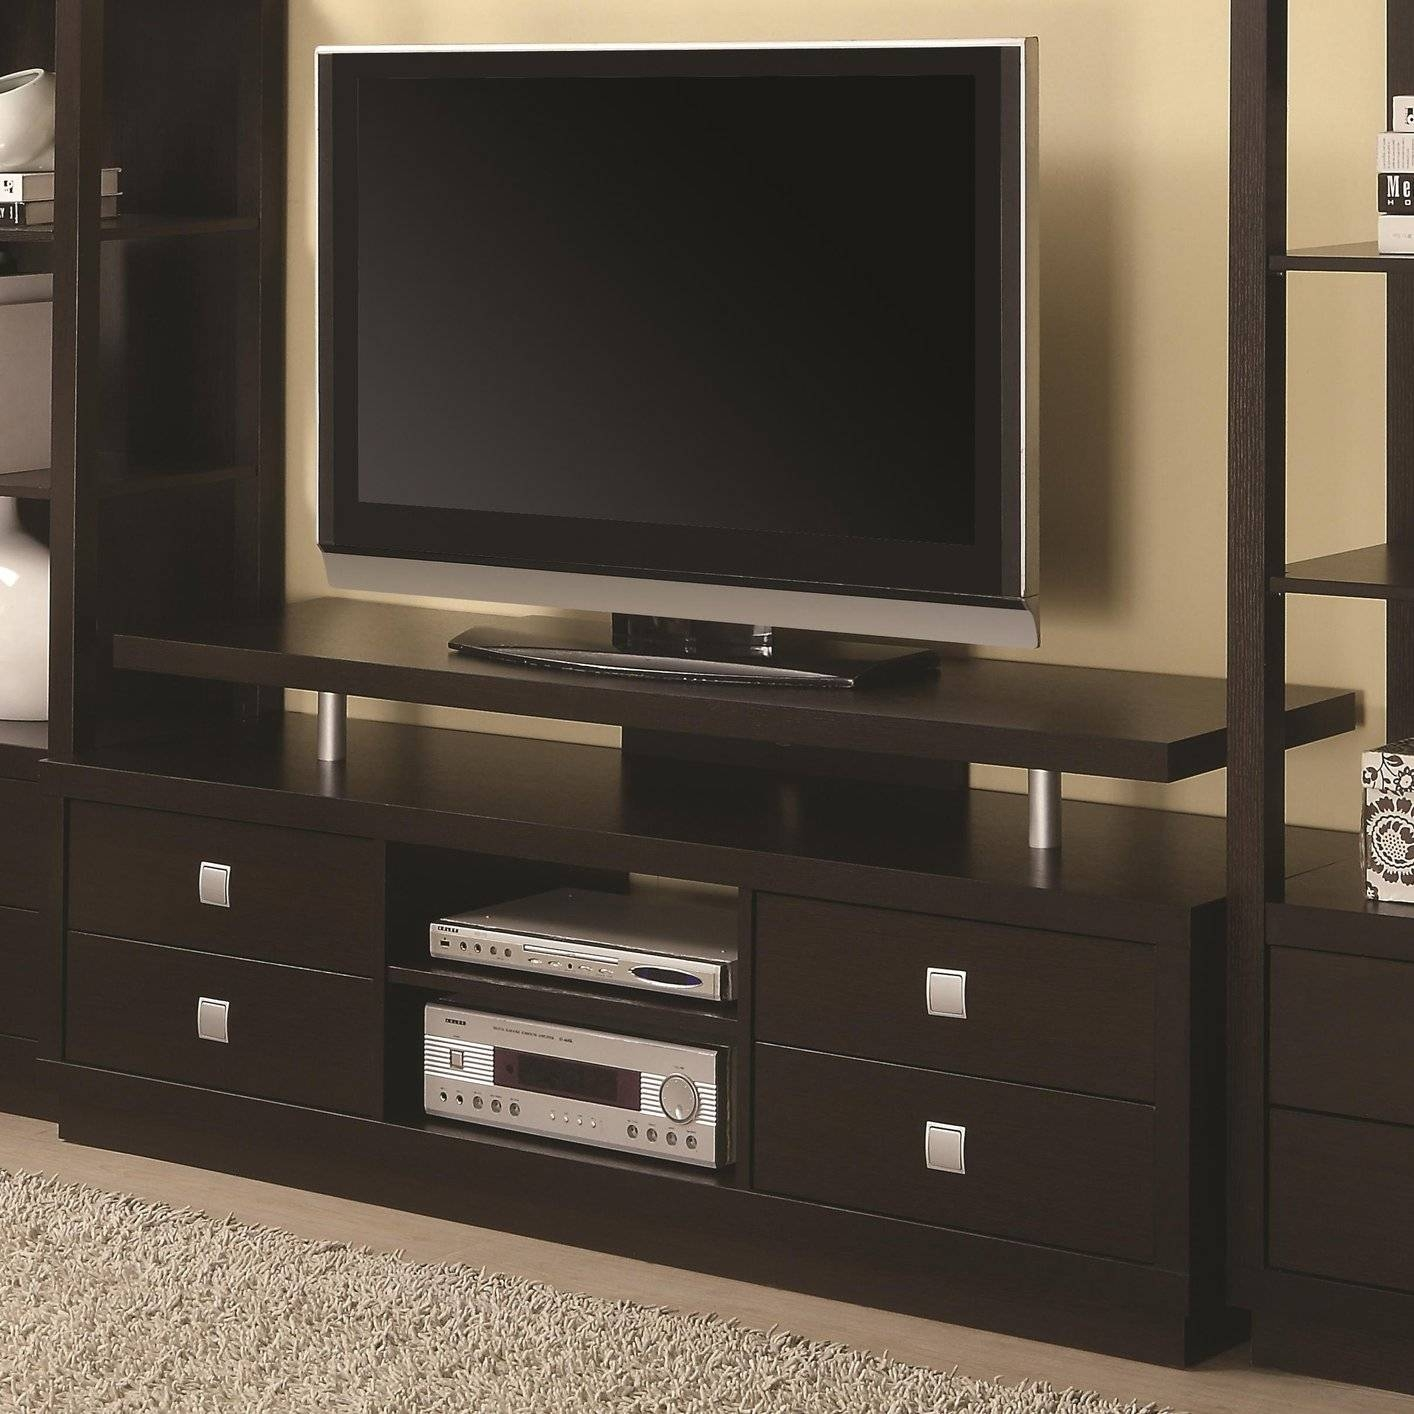 Brown Wood Tv Stand – Steal A Sofa Furniture Outlet Los Angeles Ca Regarding Wooden Tv Stands (View 2 of 15)